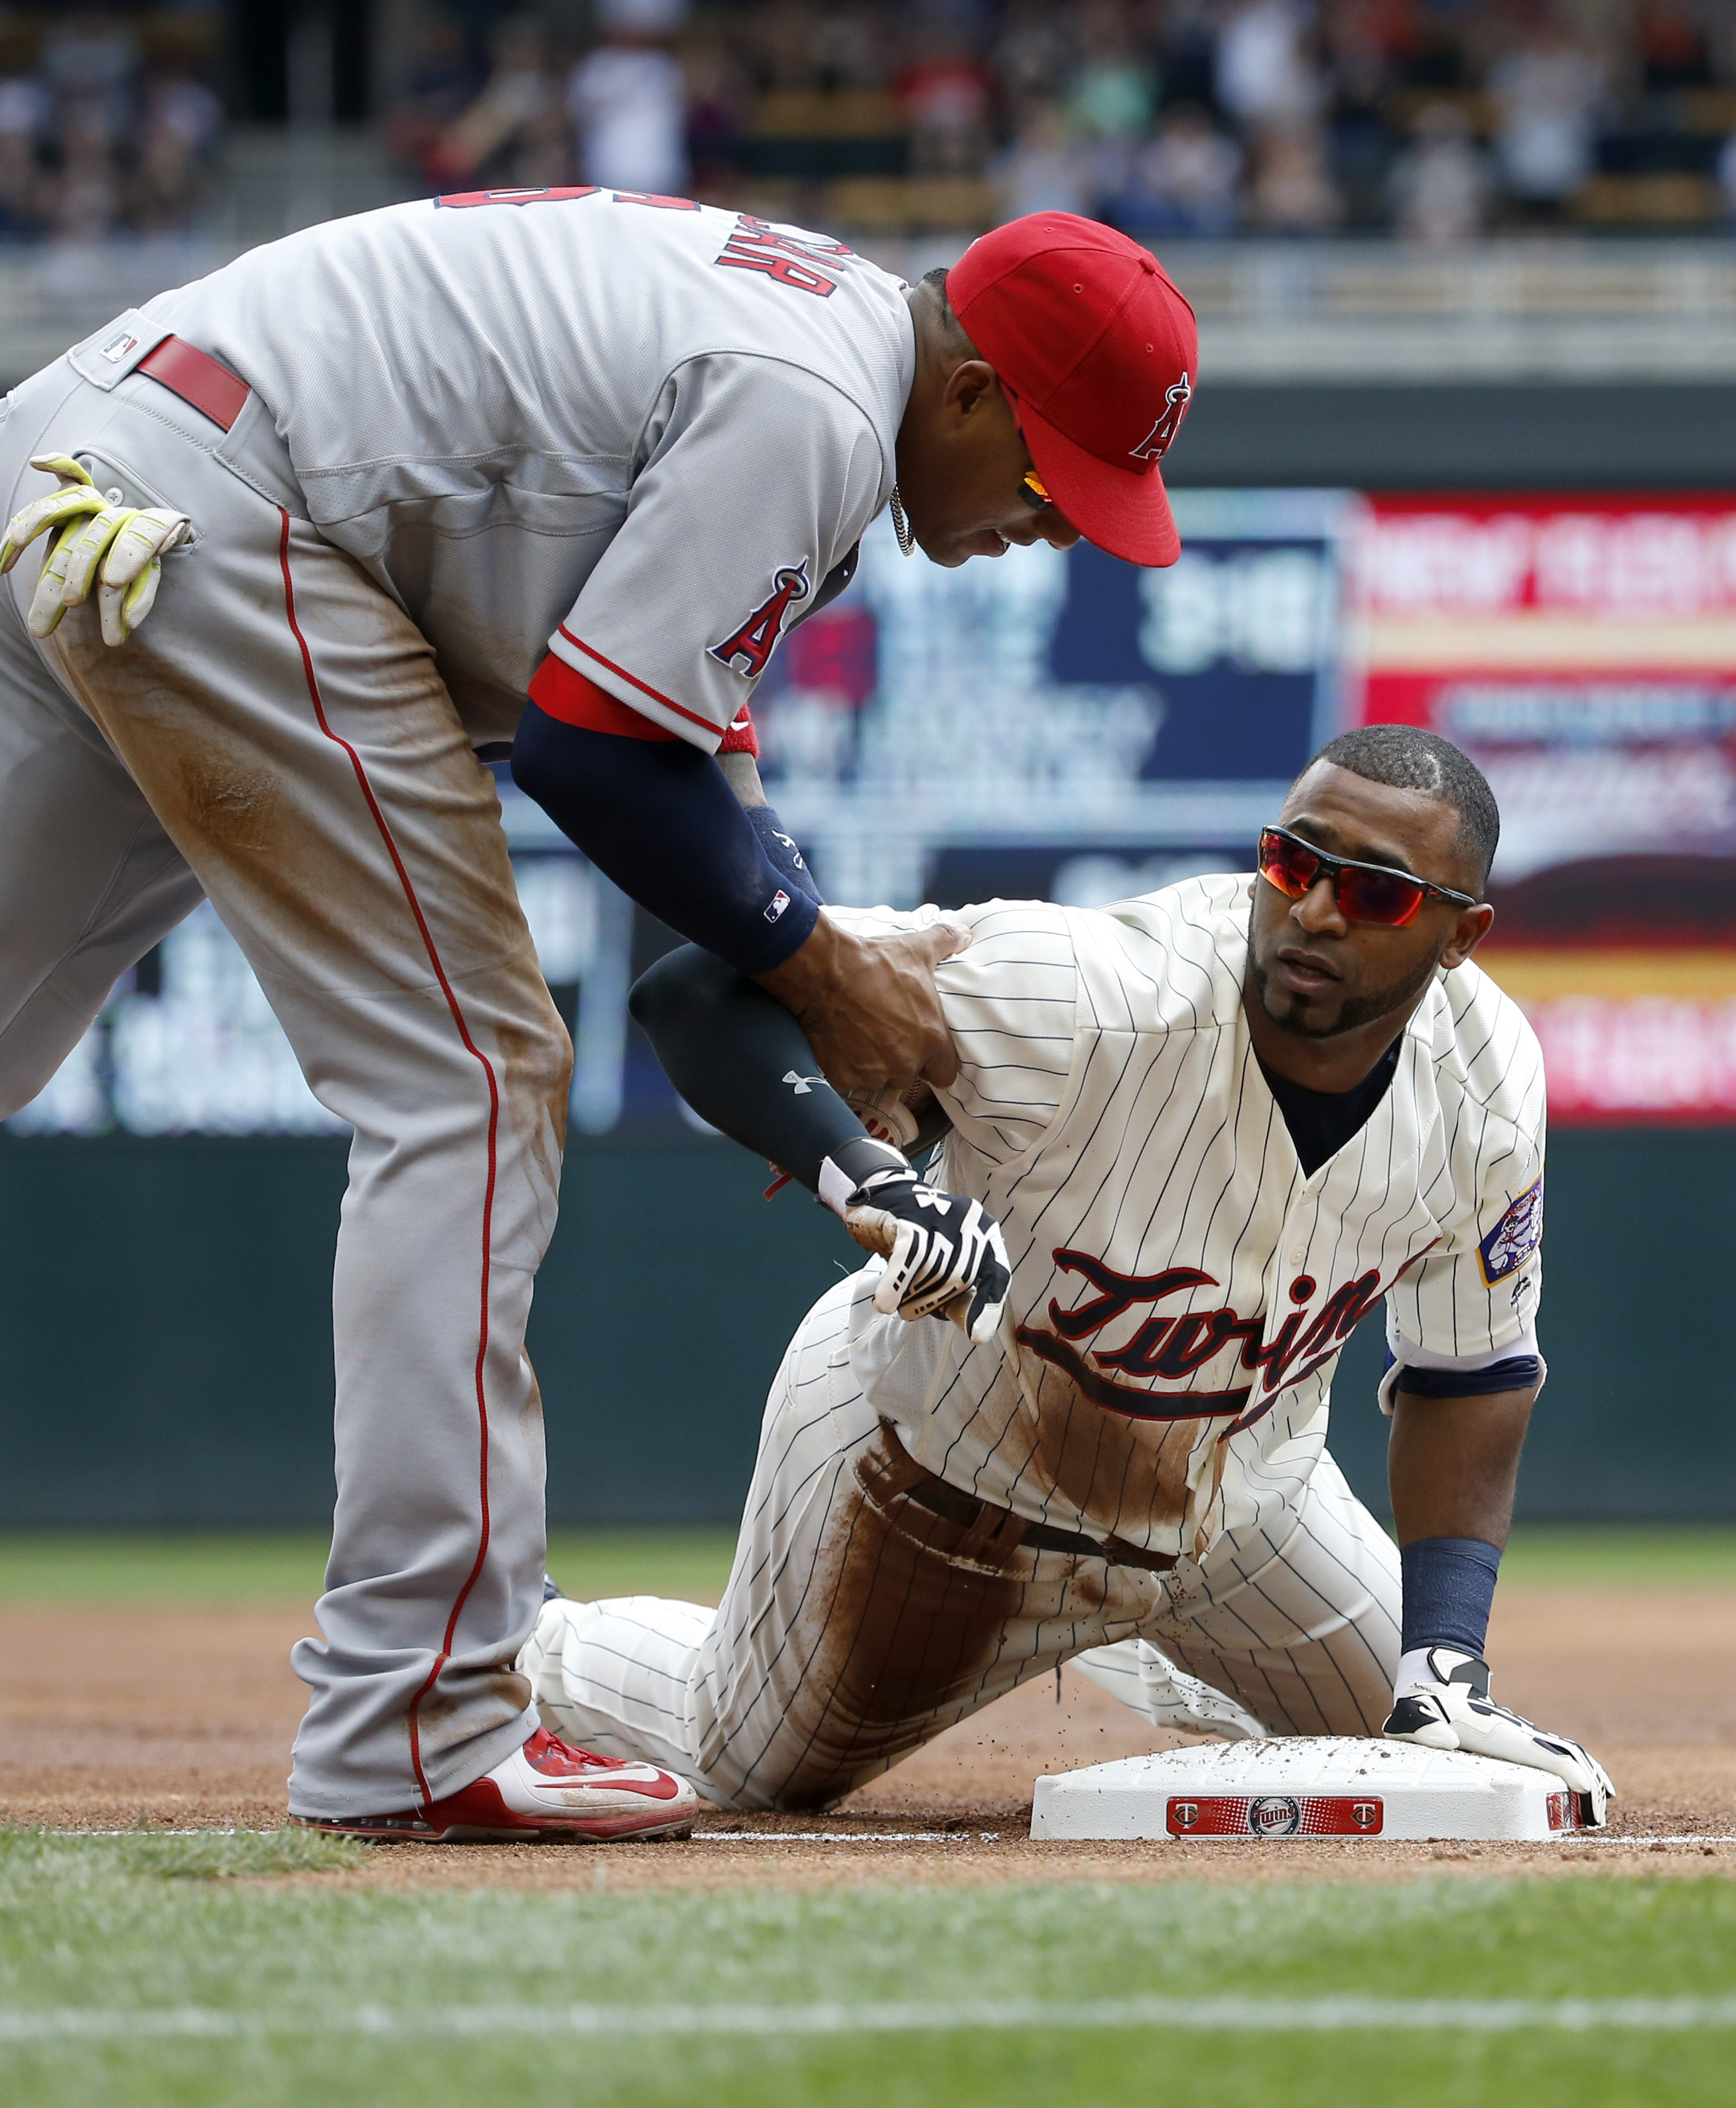 Los Angeles Angels third baseman Yunel Escobar (6) helps Minnesota Twins'  Eduardo Nunez after Nunez made it safely to third on a triple during the first inning of a baseball game in Minneapolis, Saturday, April 16, 2016. (AP Photo/Ann Heisenfelt)